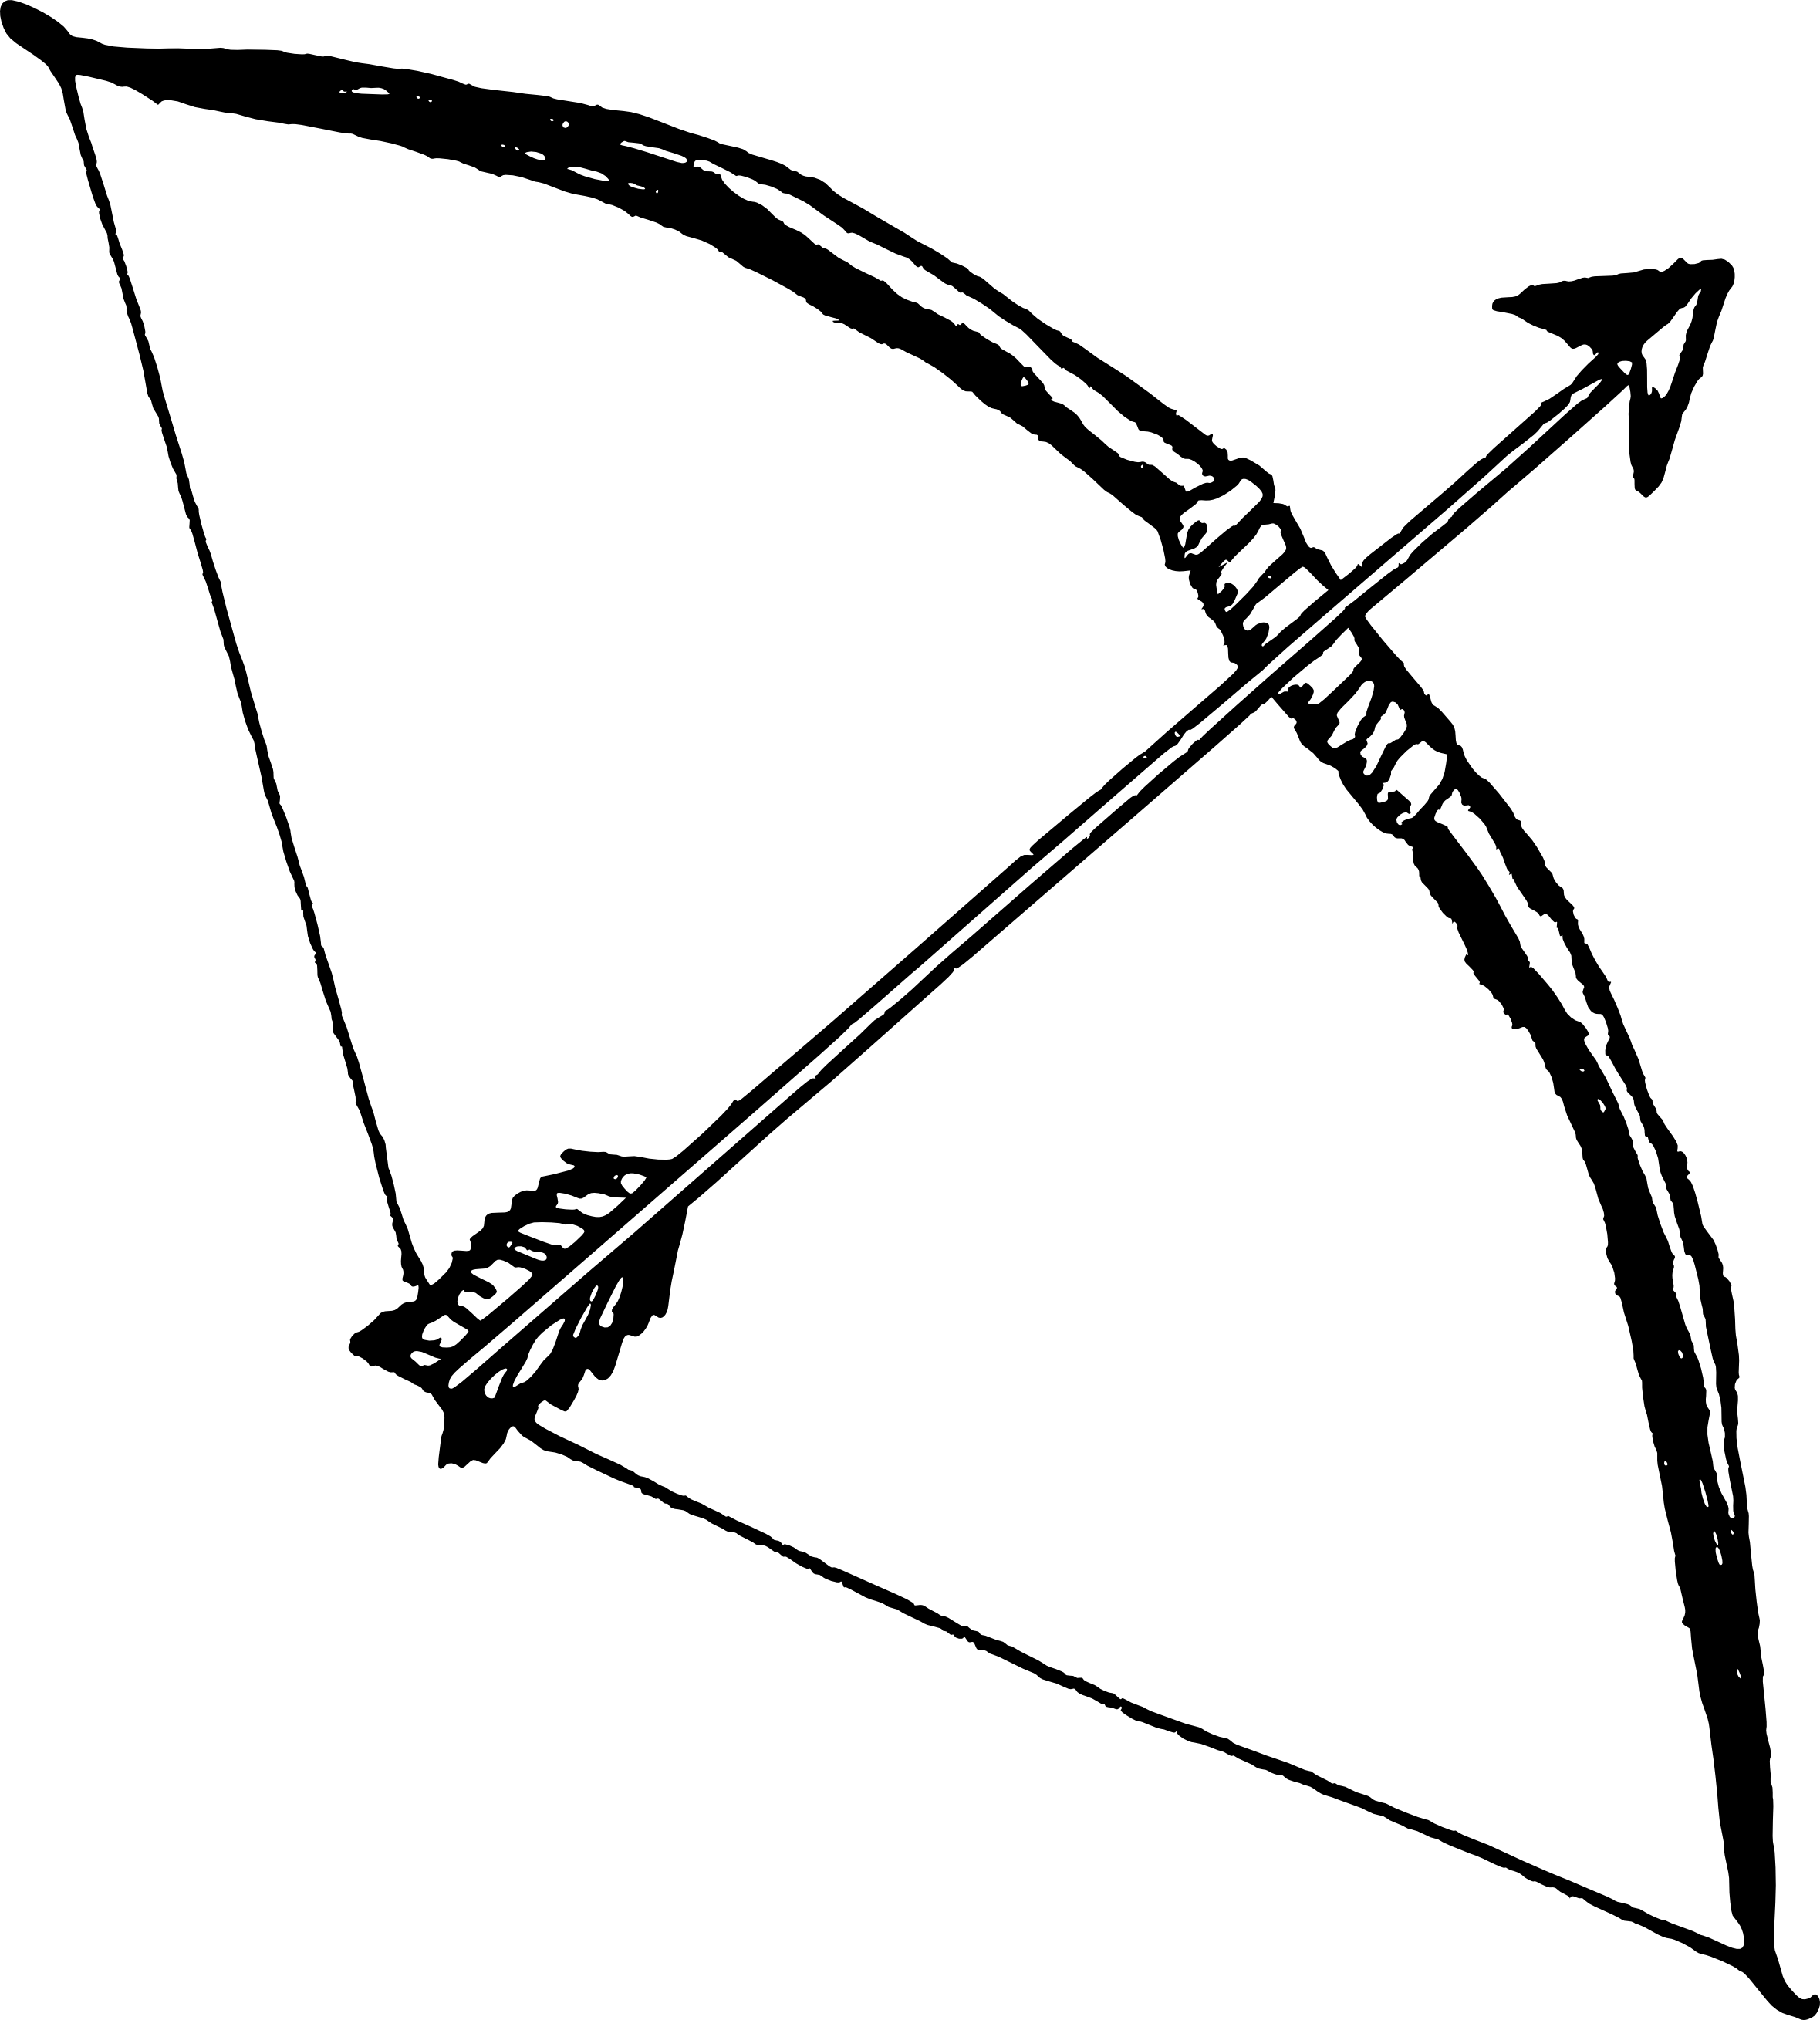 5 Bow and Arrow (PNG Transparent) | OnlyGFX.com